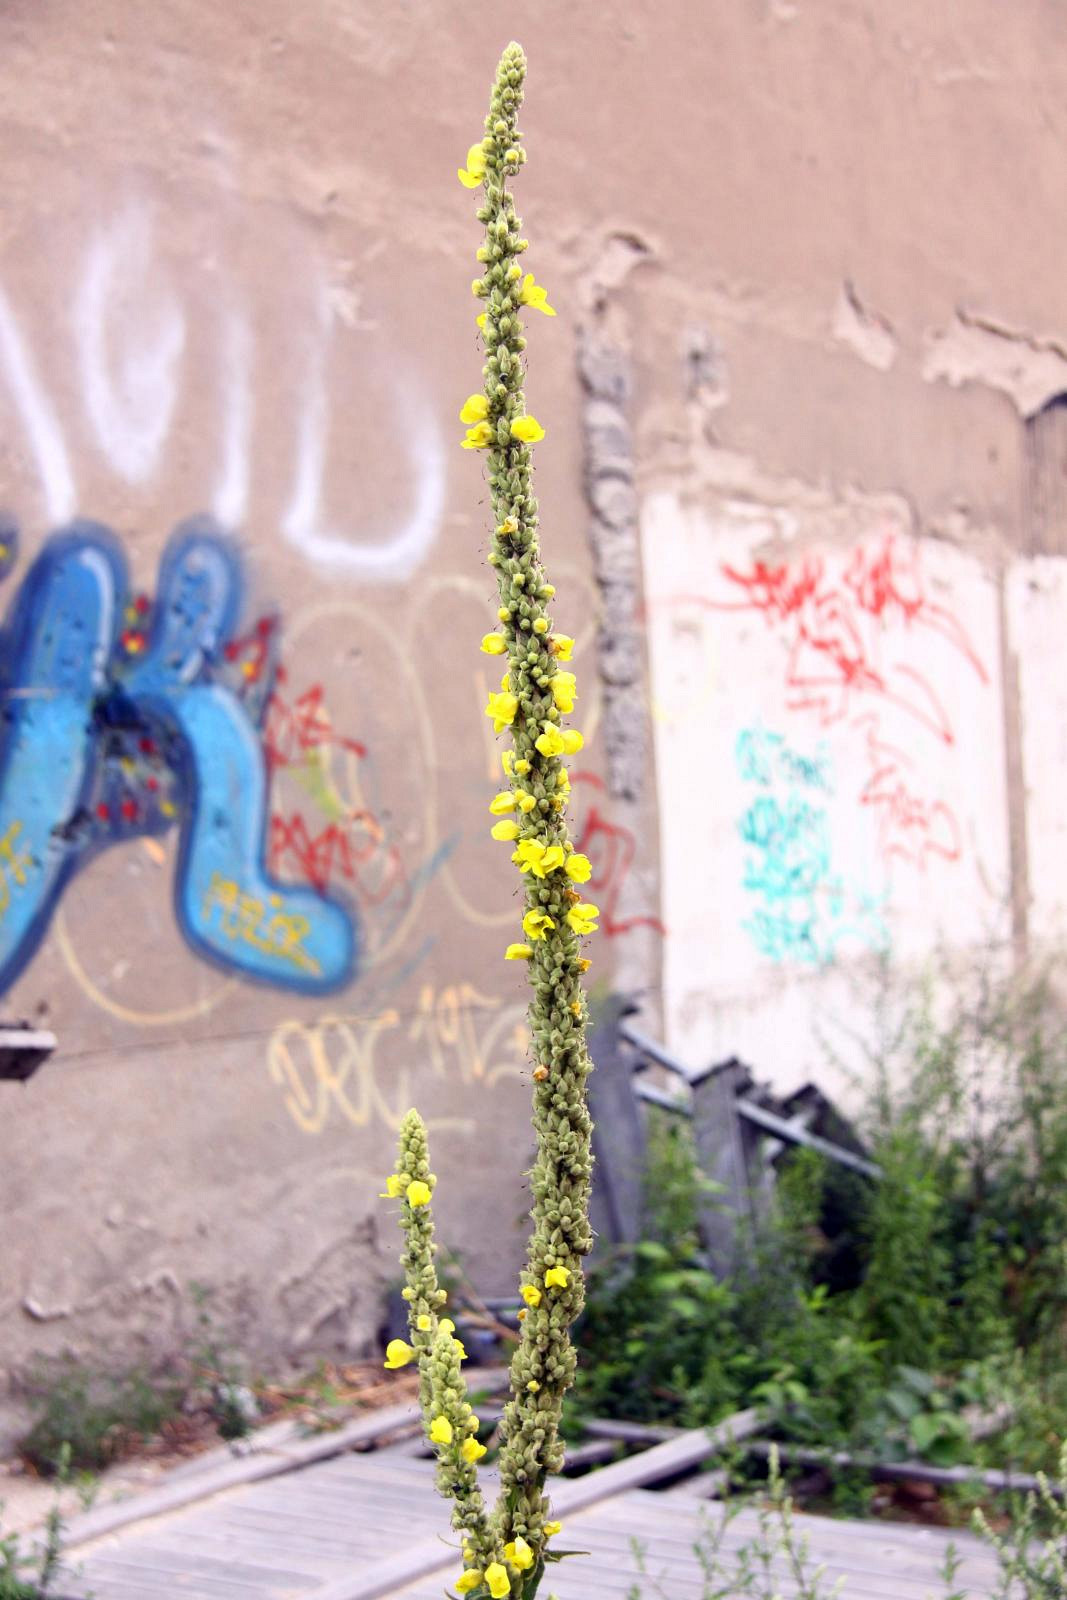 Flowers and walls